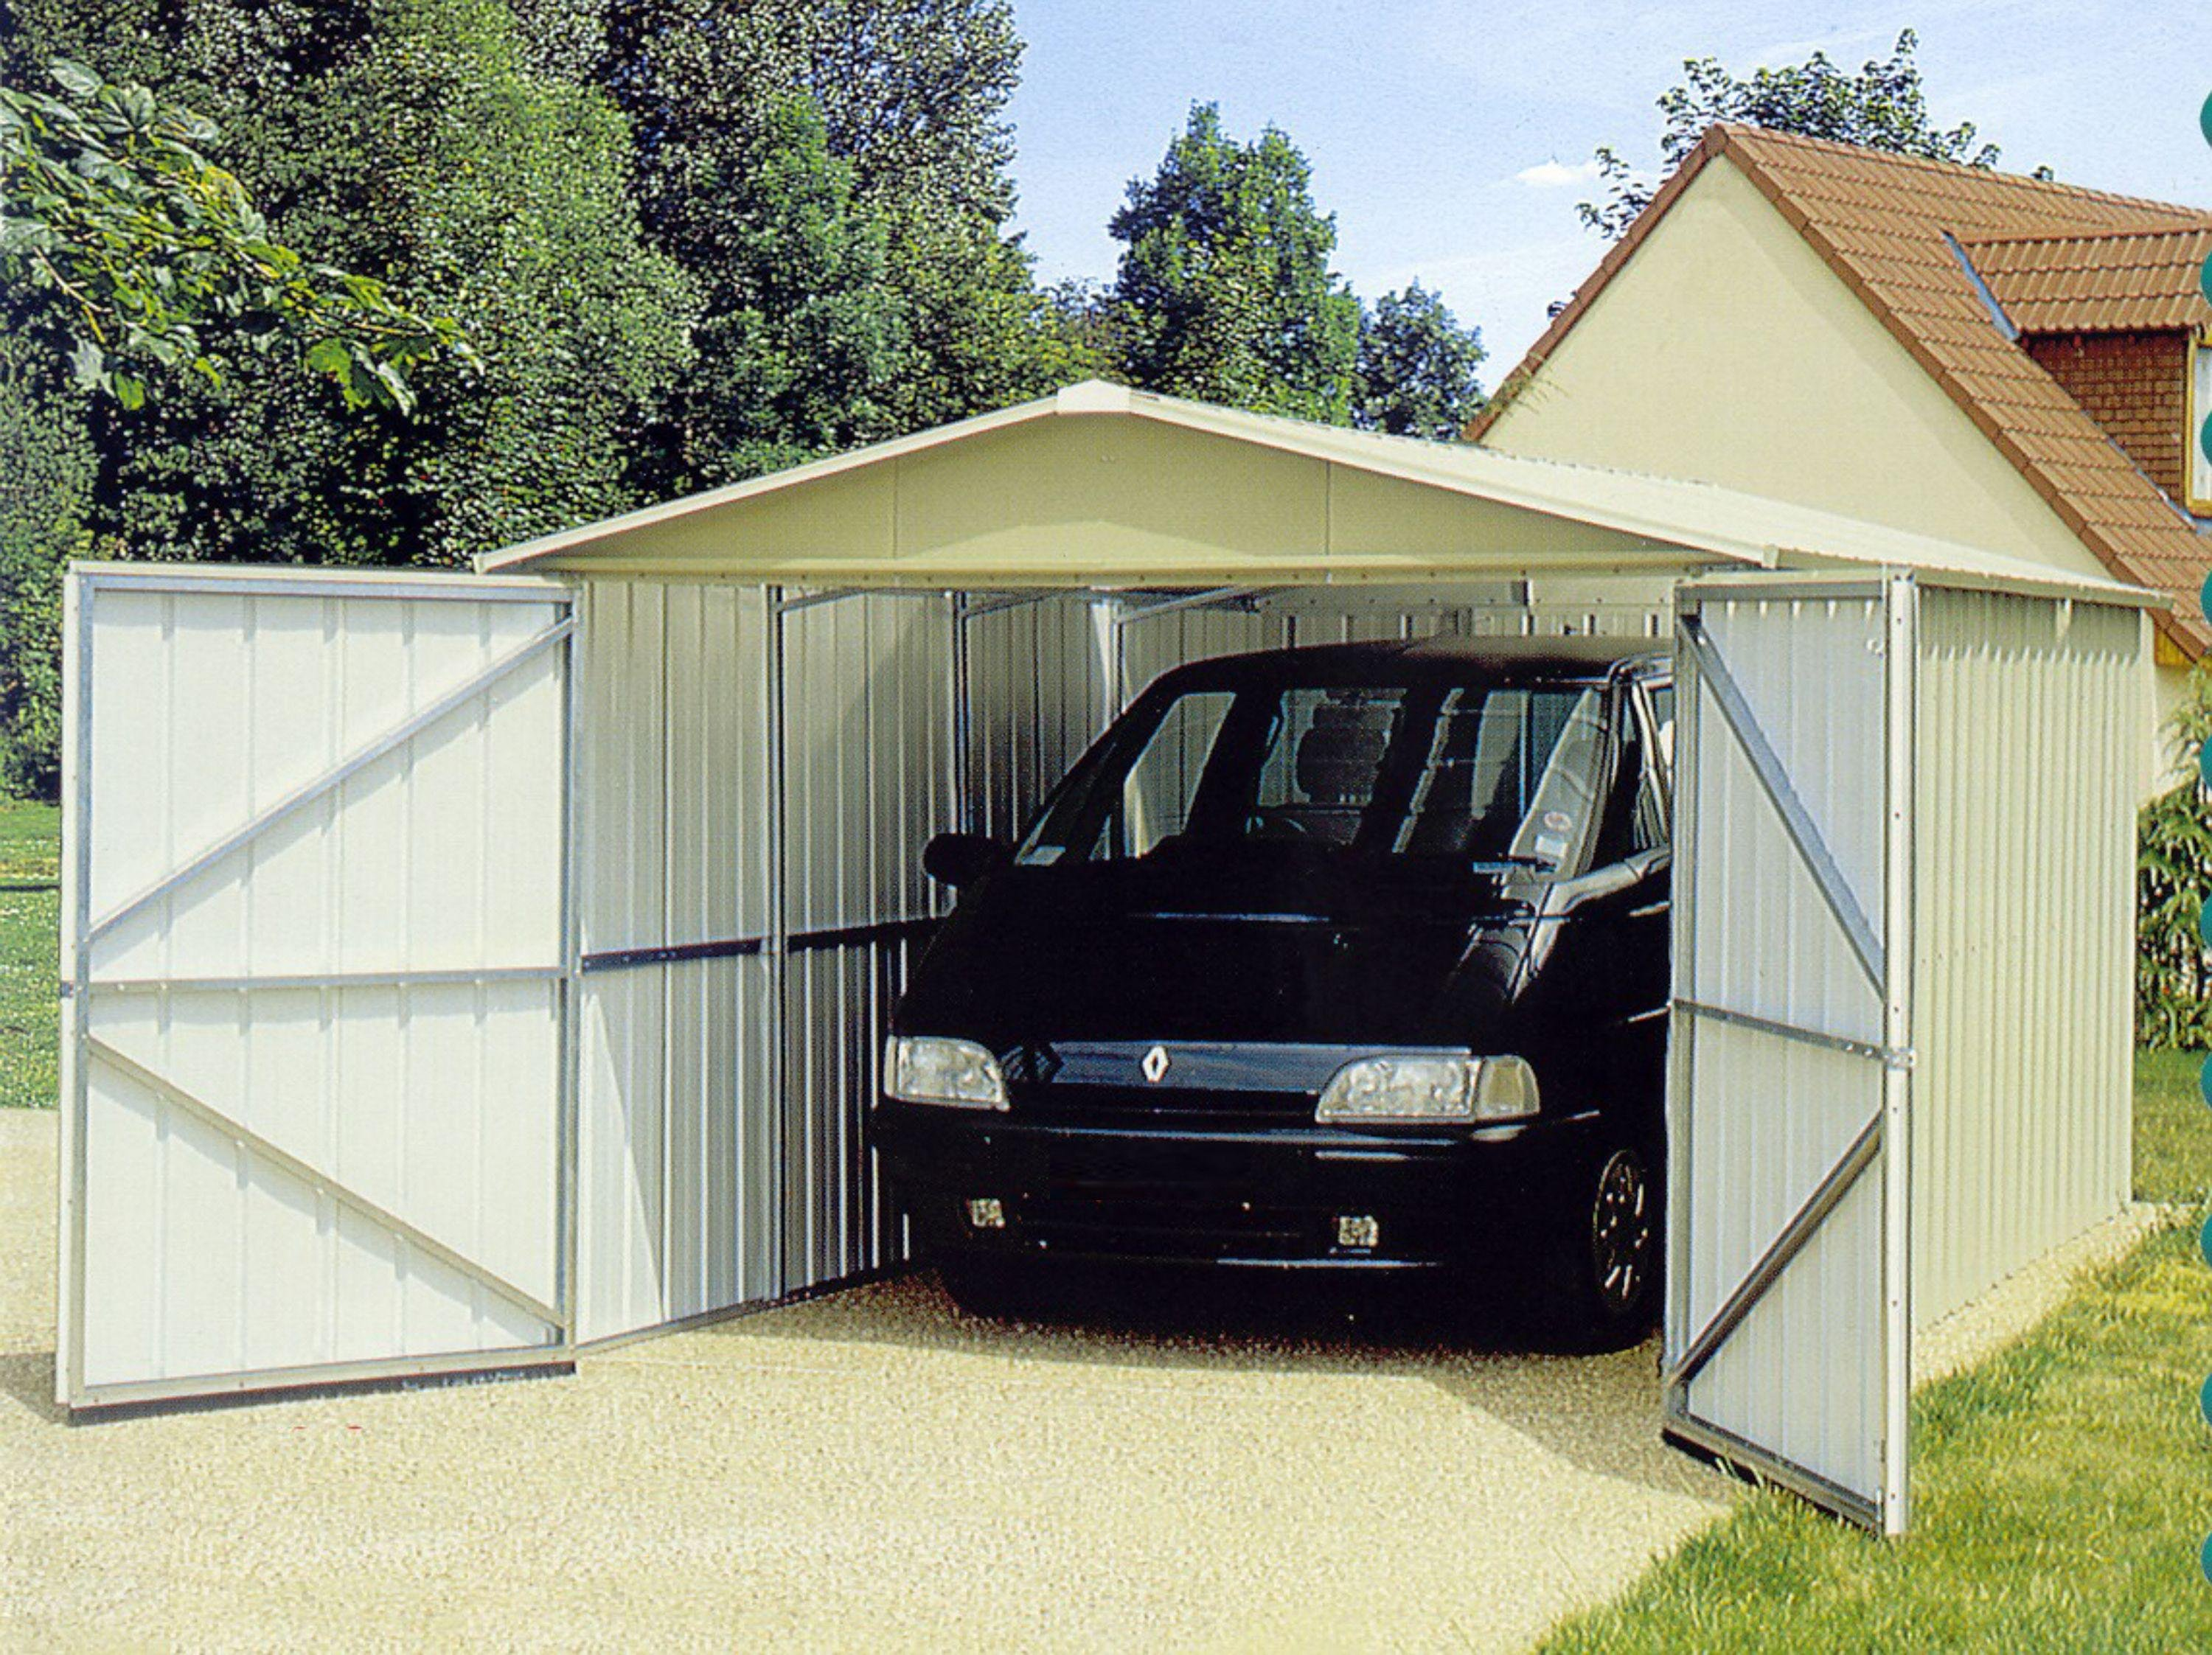 Sale On Yardmaster Maintenance Free Garage 3 X 5m